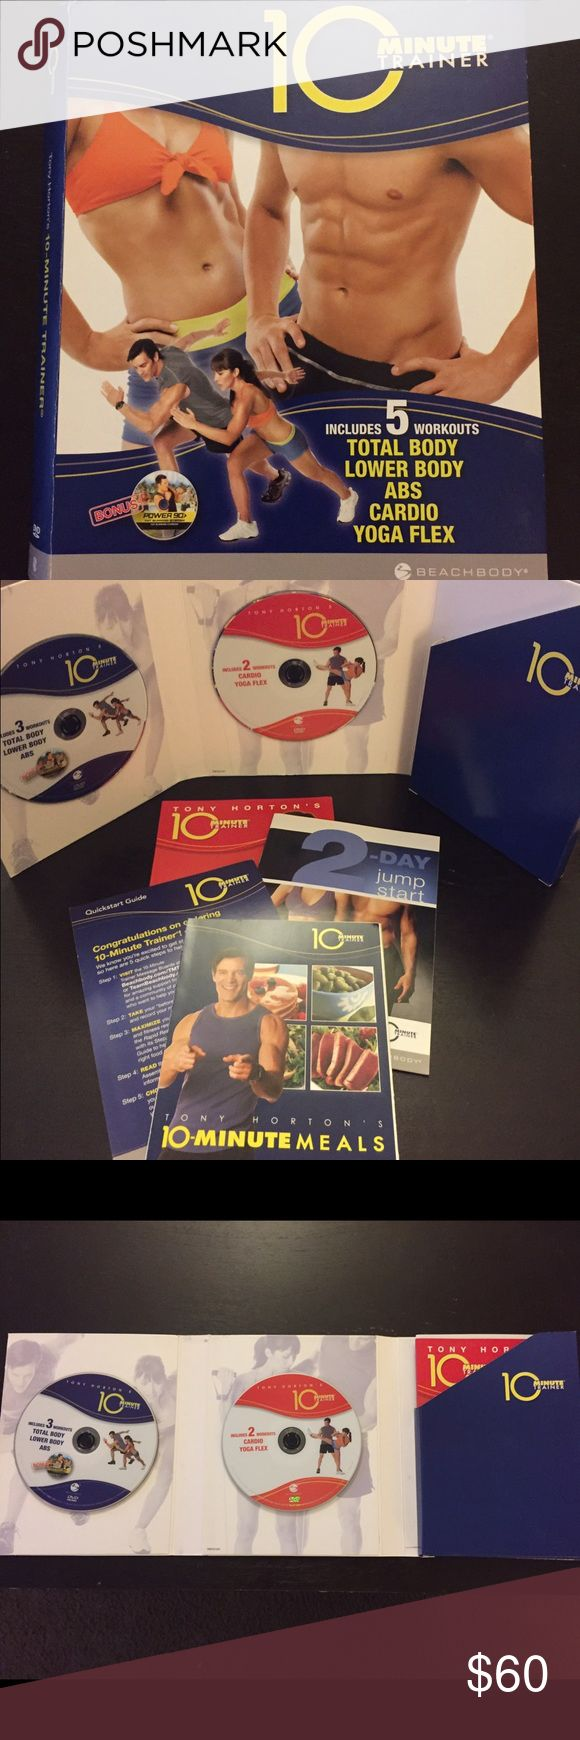 BEACHBODY | 10 Minute Trainer Workout Don't have much time to work out but want great results?! Try out this awesome workout DVD set from BEACHBODY! Included is what is photographed: the 2 DVDs with all the workouts on them. This does NOT include any work out bands or equipment.  (Disclaimer: This DVD set has not been used in years & I do not have the time to sit through & watch it to see the condition of it. I personally never had a problem with it & always kept it in the case when not in…